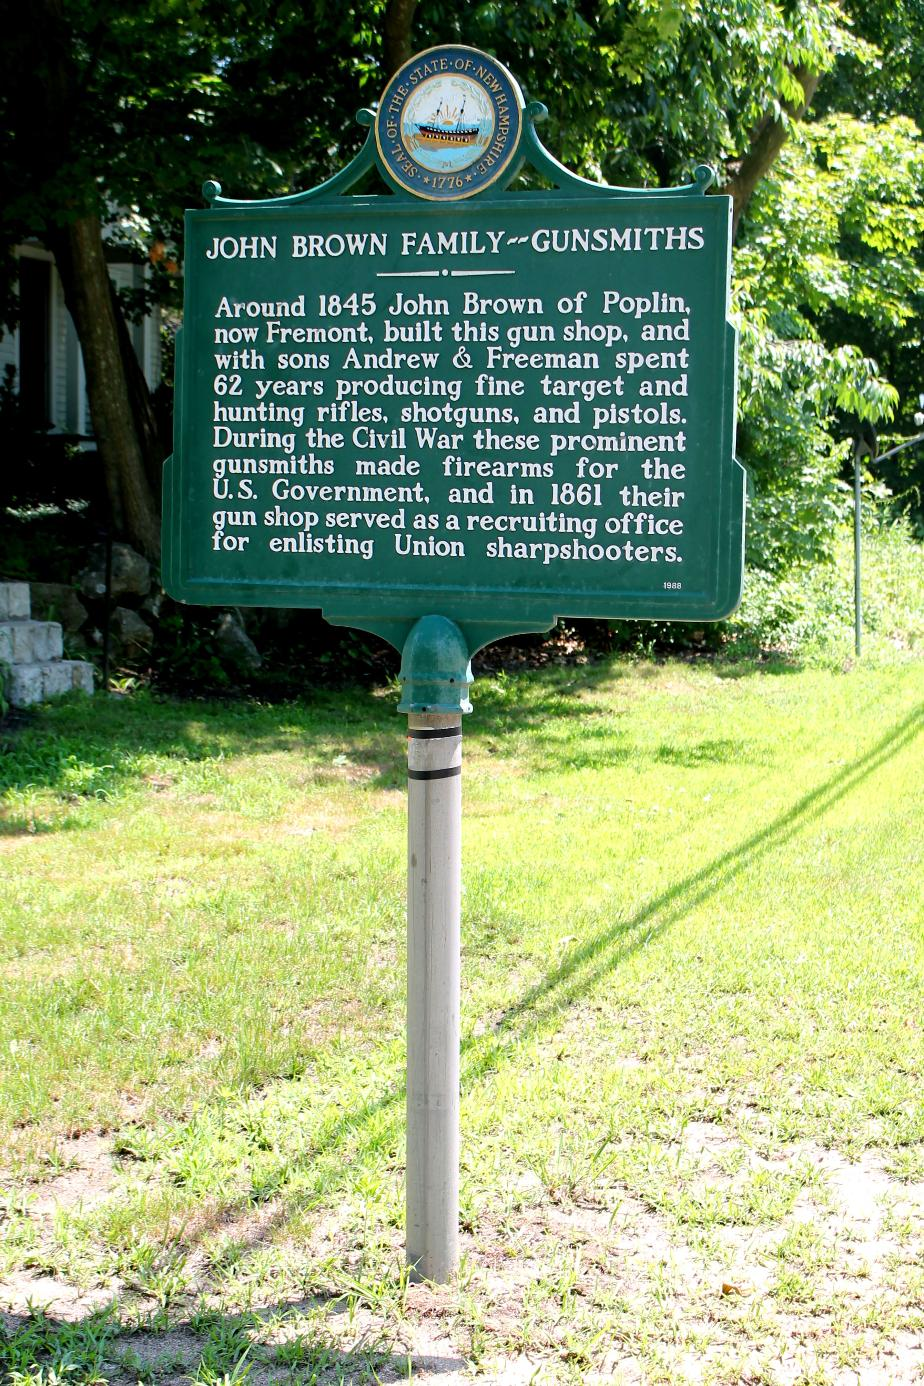 John Brown Family Gunsmiths - Historical Marker - Poplin/Fremont New Hampshire